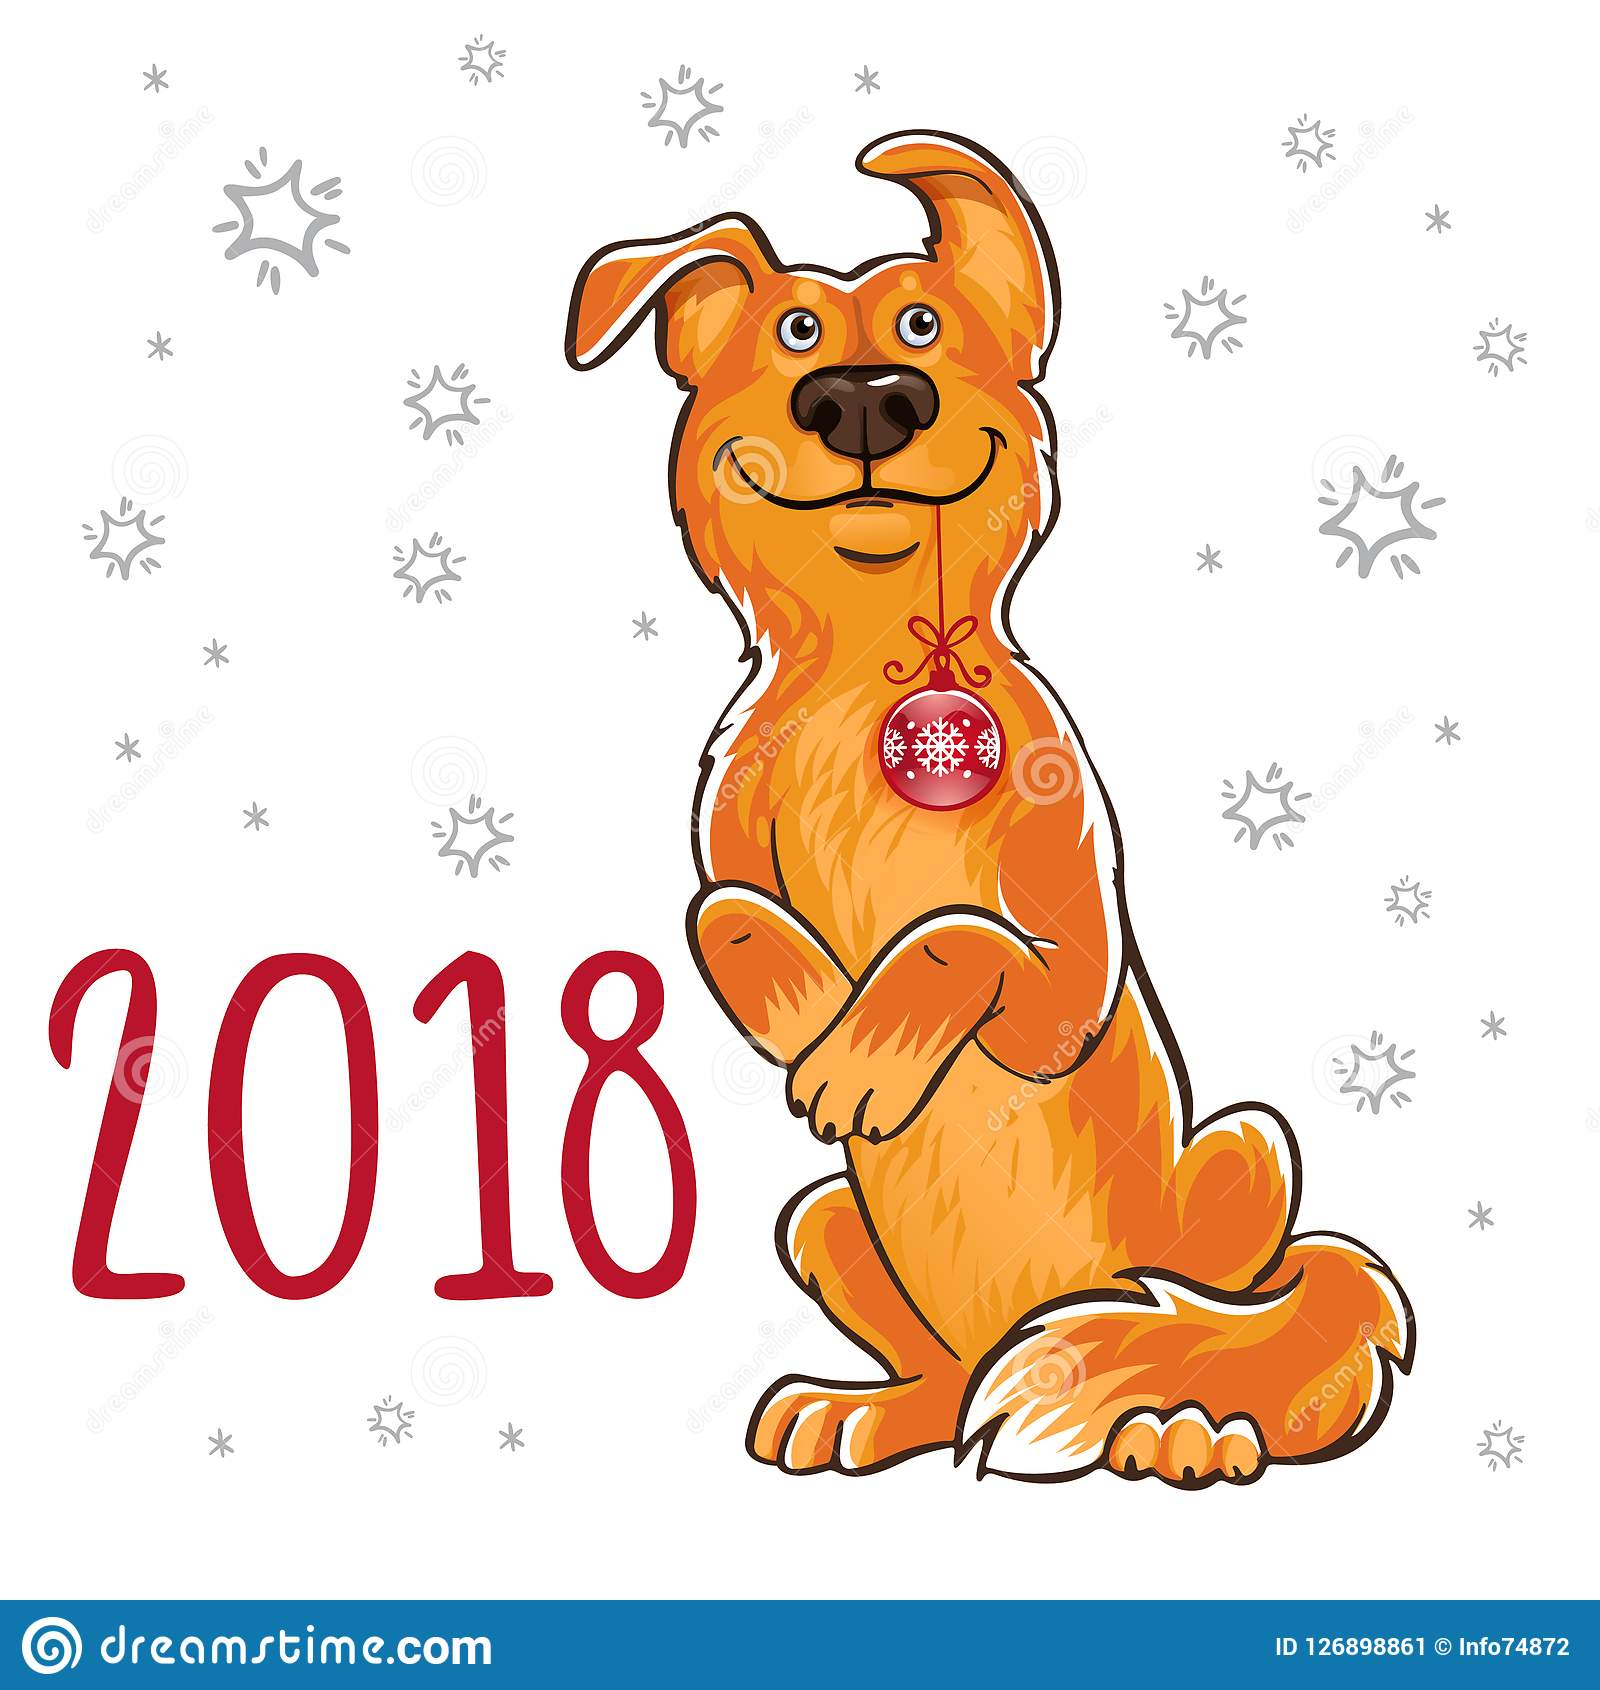 Symbol of the Chinese New Year 2018. Year of the dog. Design for